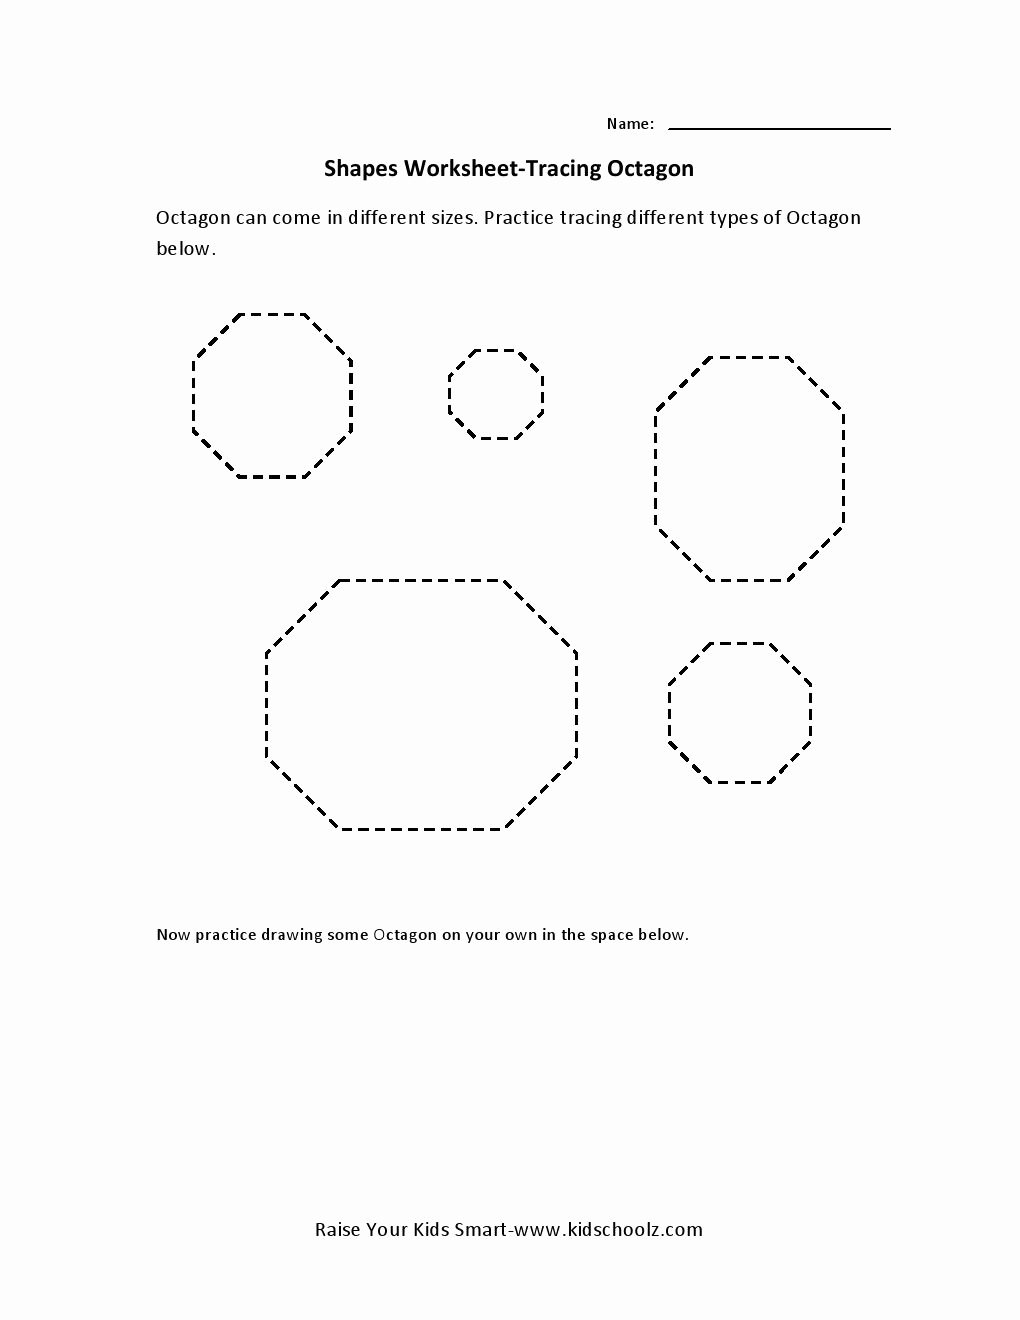 Free Printable Octagon Worksheets for Preschoolers Free Tracing Worksheets – Octagon